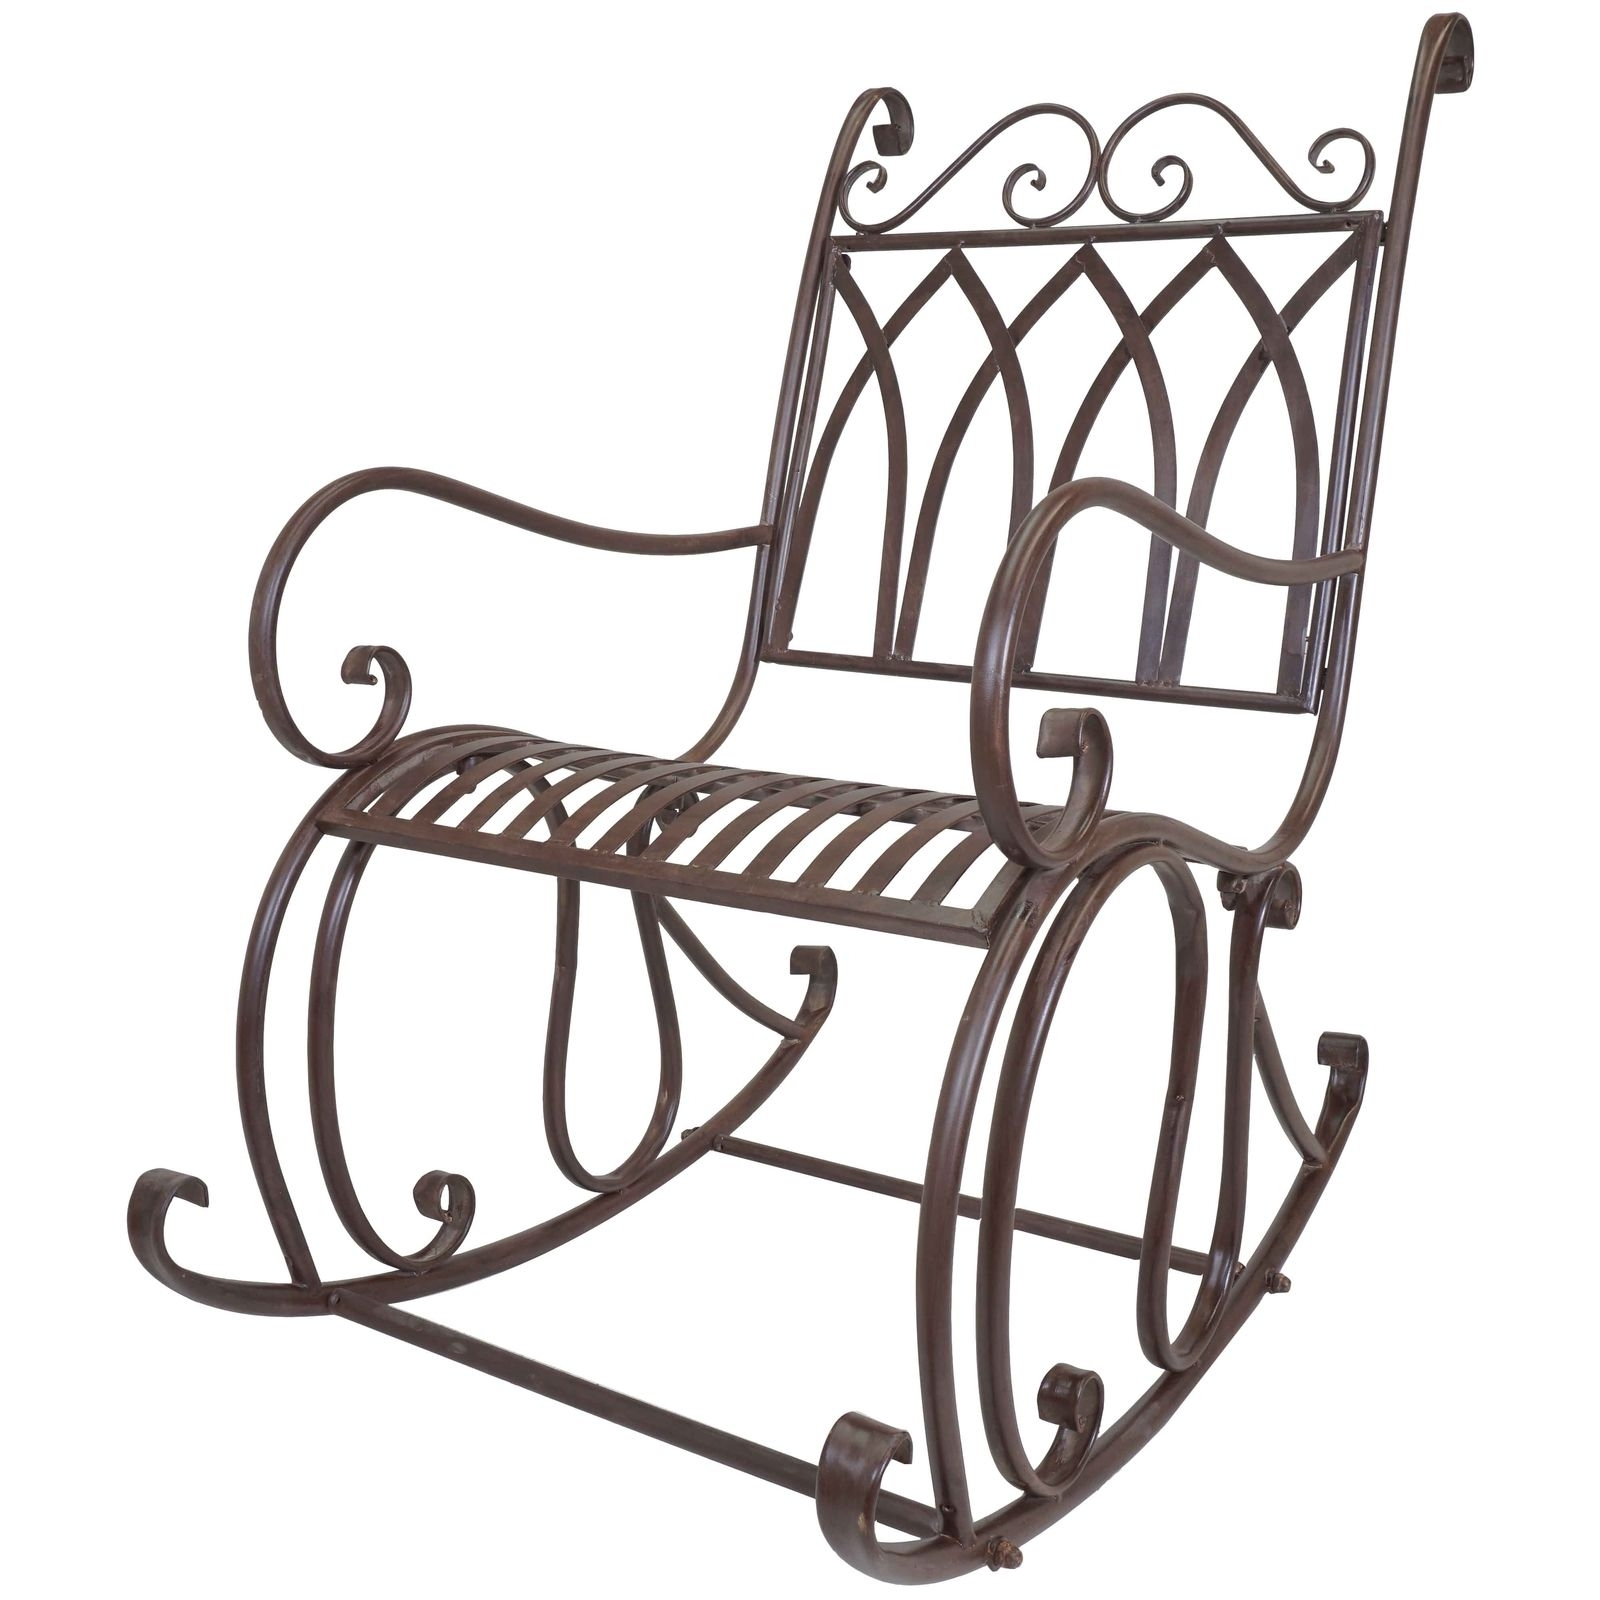 Most Current Patio Metal Rocking Chairs Regarding Titan Outdoor Metal Rocking Chair White Porch Patio Garden Seat Deck (View 10 of 15)